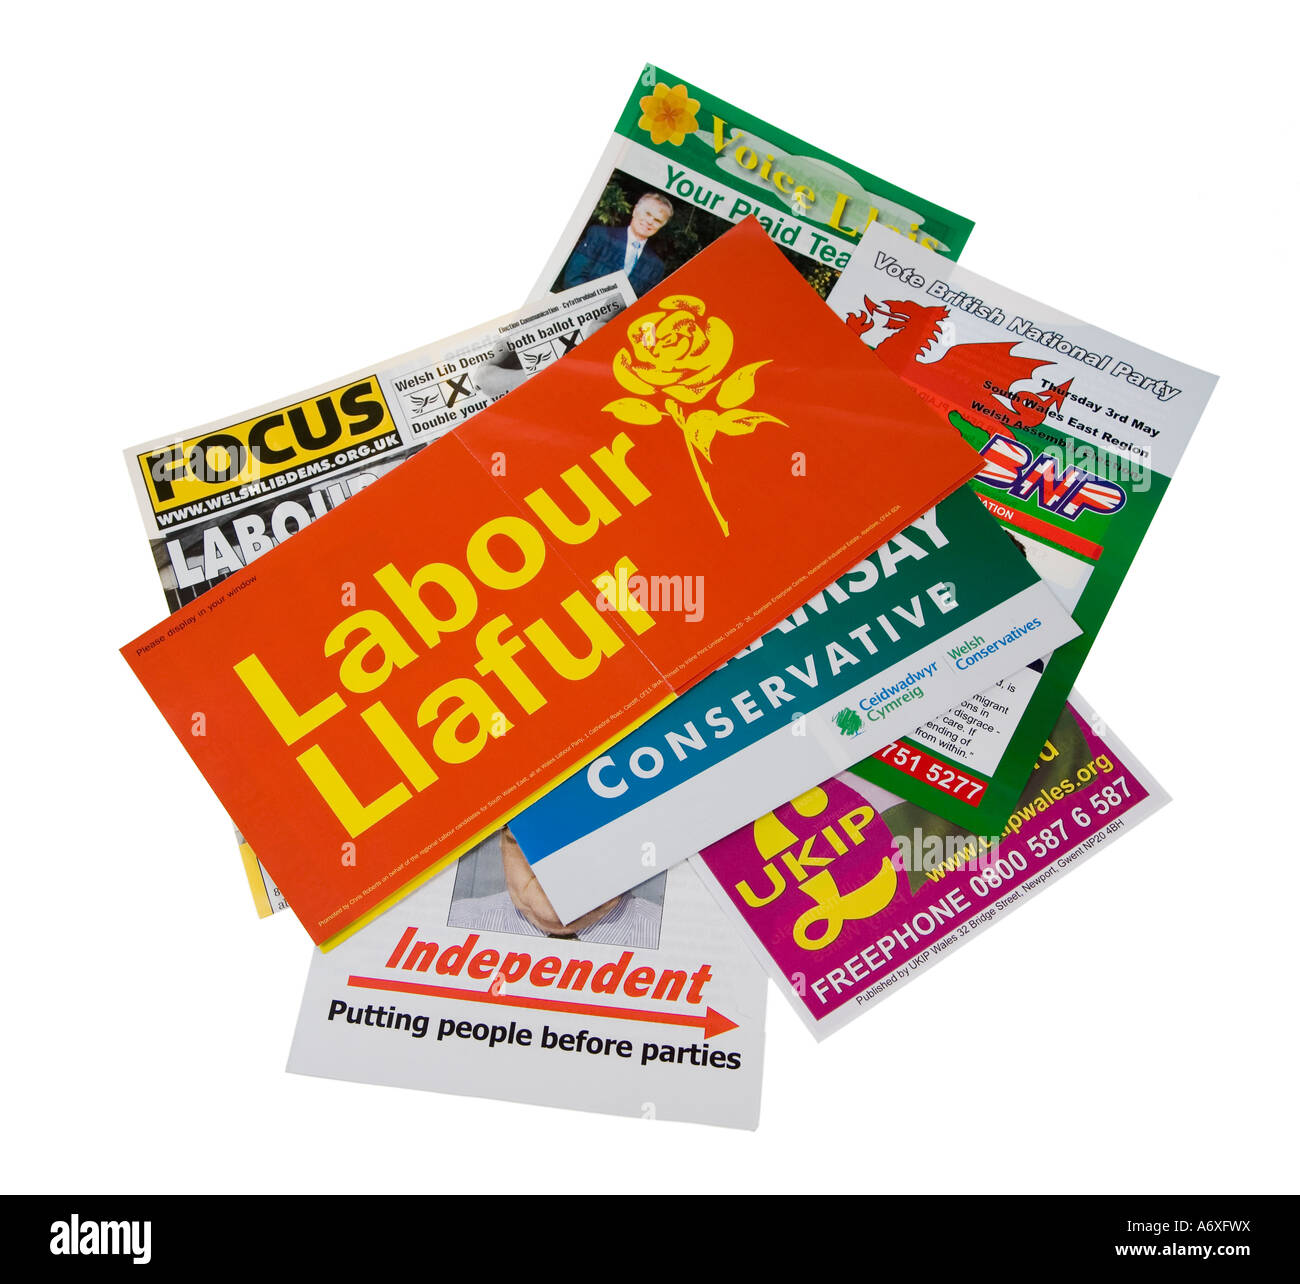 Selection of political party leaflets for UK elections as delivered to Welsh households - Stock Image